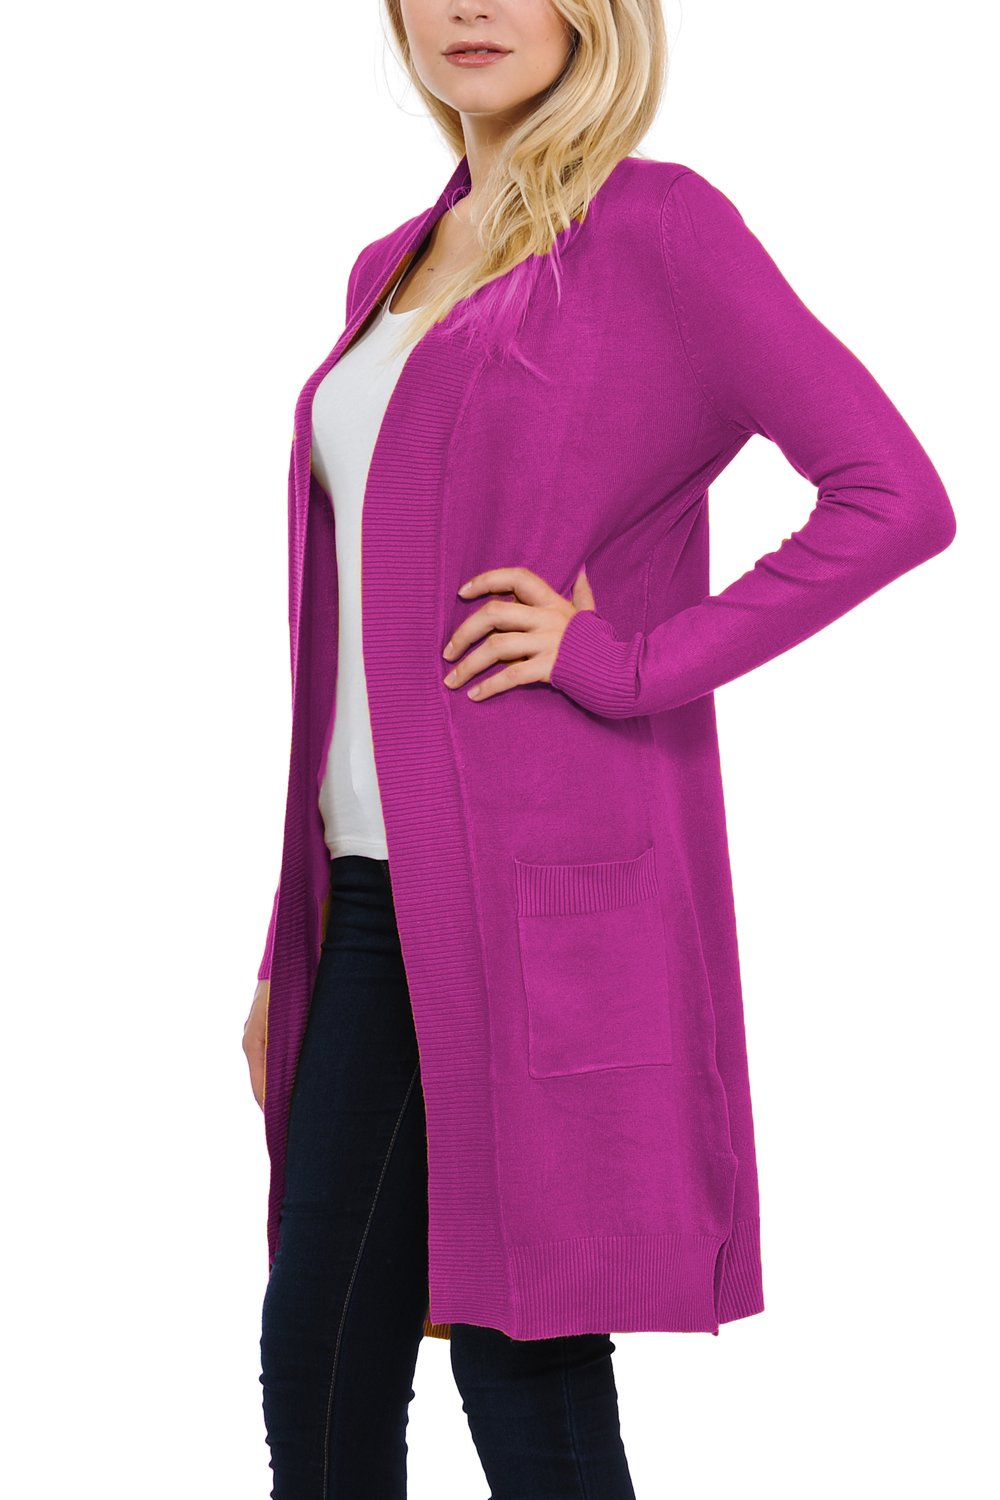 JNTOP Women's Long Sleeve Pocket Open Front Knit Cardigan Magenta Medium by JNTOP (Image #3)